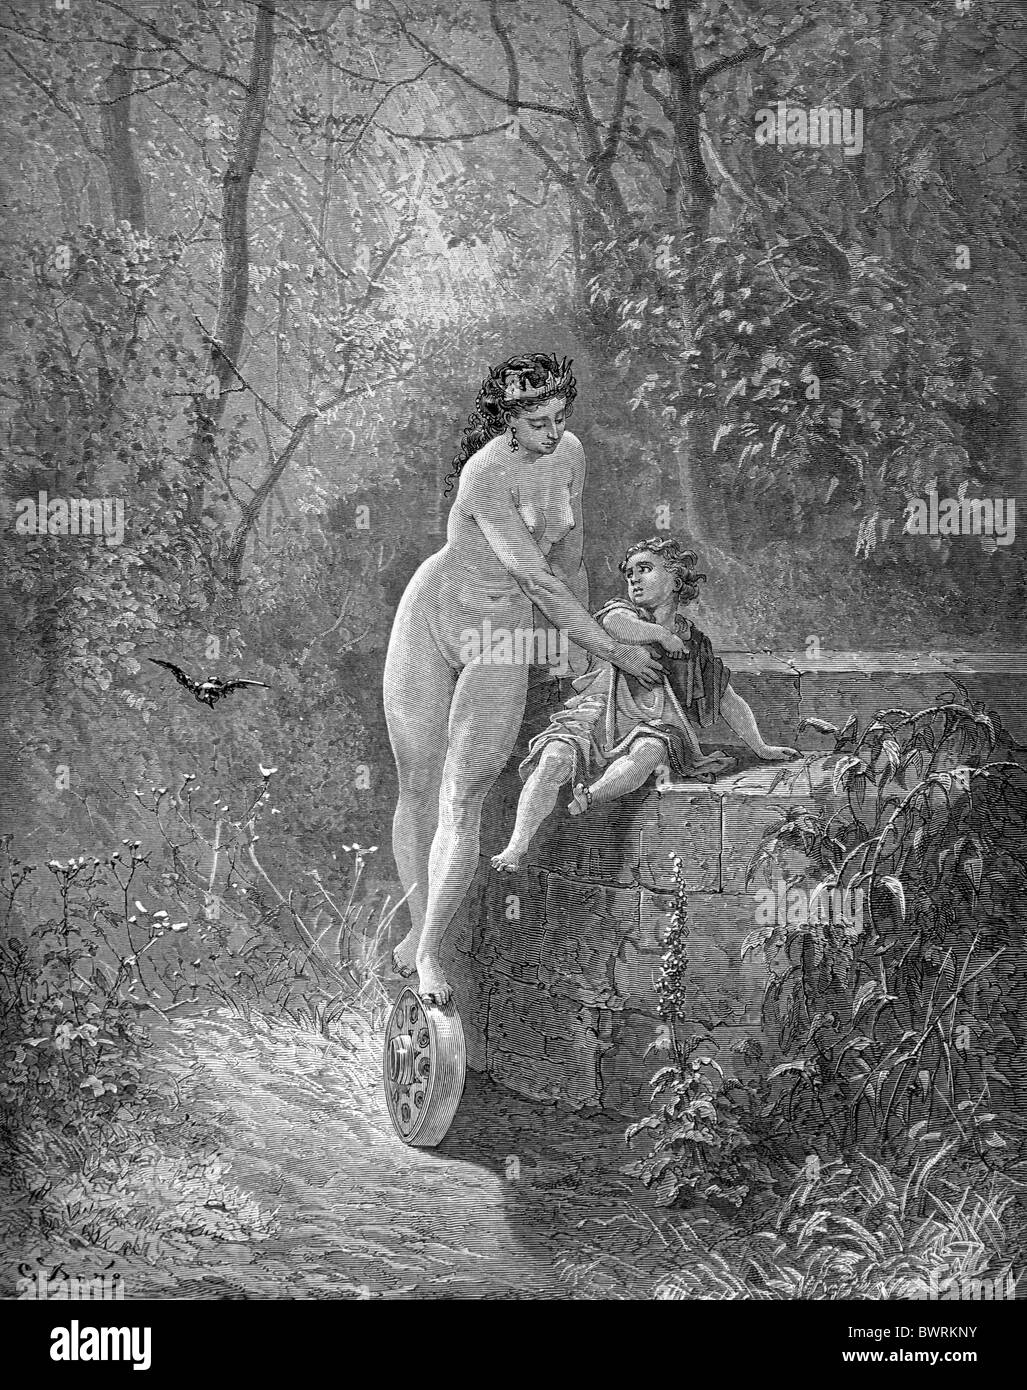 Gustave Doré; The Goddess Fortune saves the Little Child from the Well, from Jean de la Fontaine's Fables - Stock Image